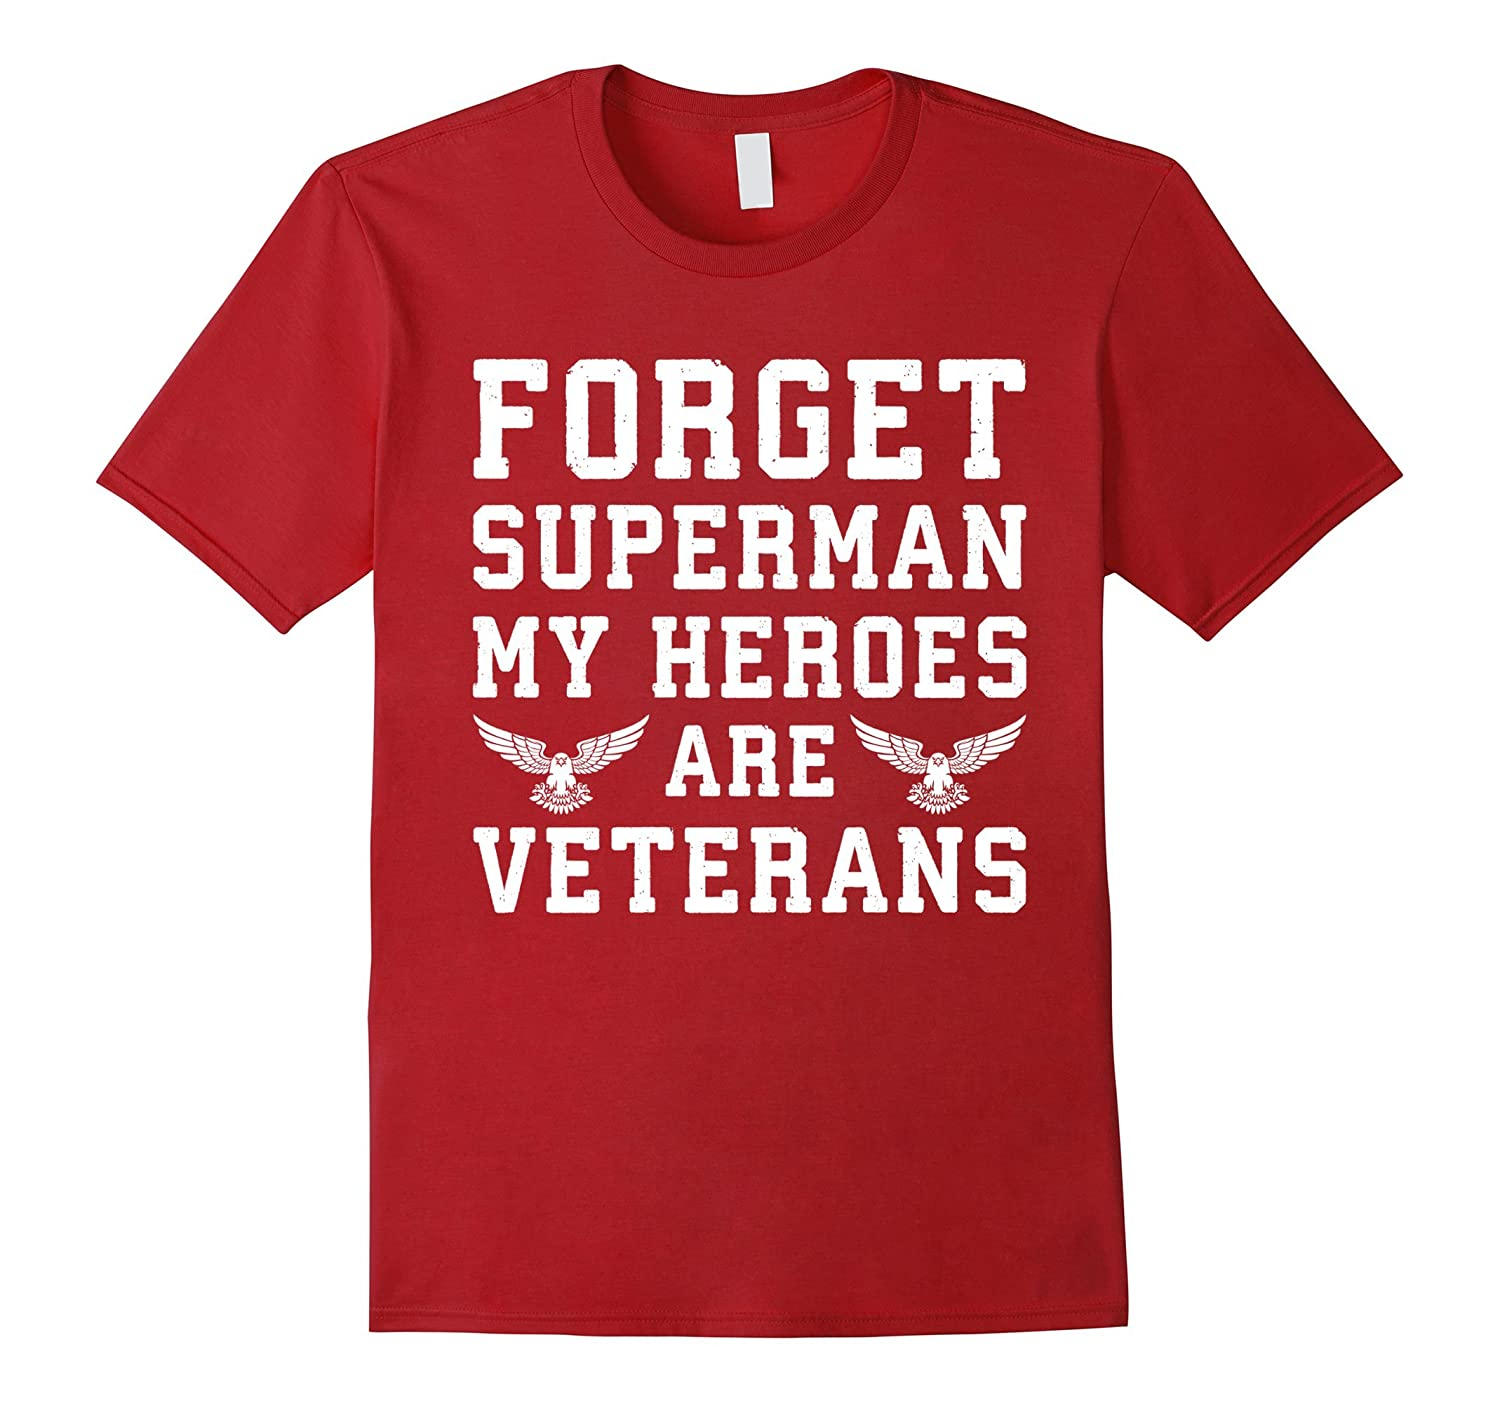 Forget Super Man My Heroes Are Veterans t shirt-Veterans-RT